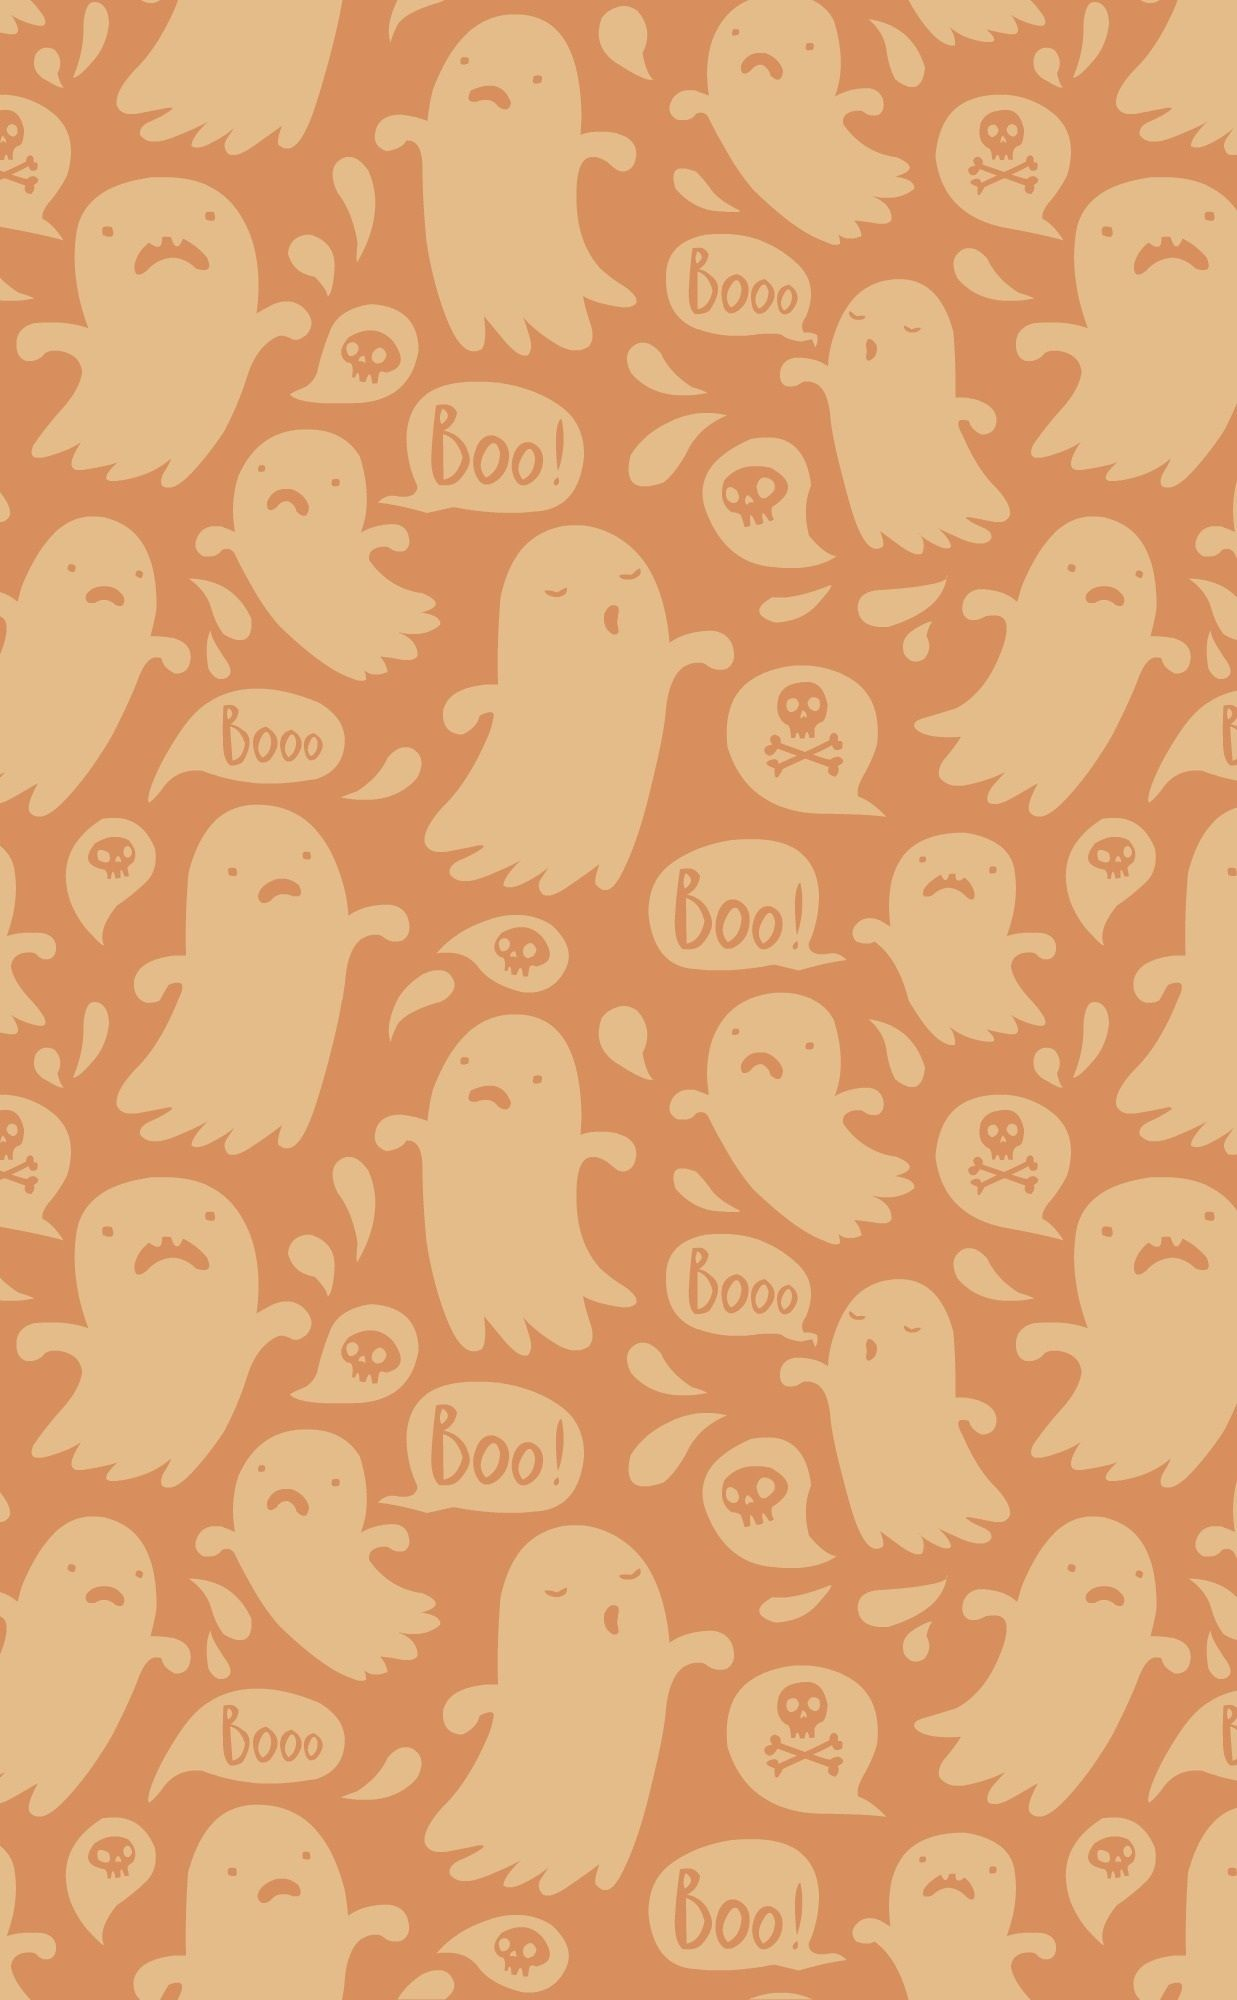 Must see Wallpaper Halloween Ghost - ba58a2d8a8ca757342c65b8496c2bc51  Perfect Image Reference_512095.jpg